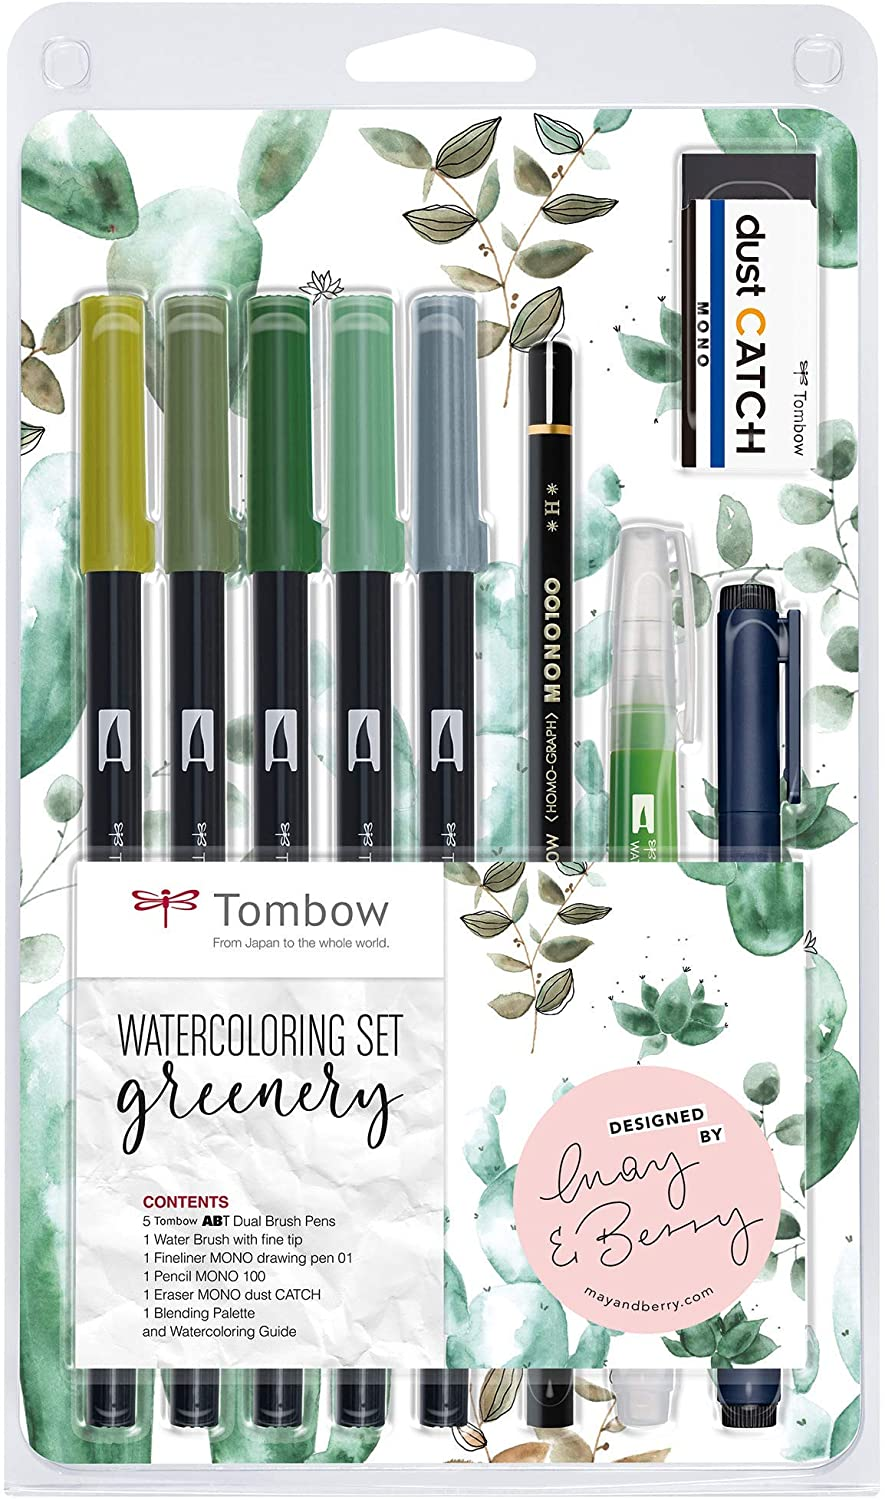 Watercolouring Set Greenery